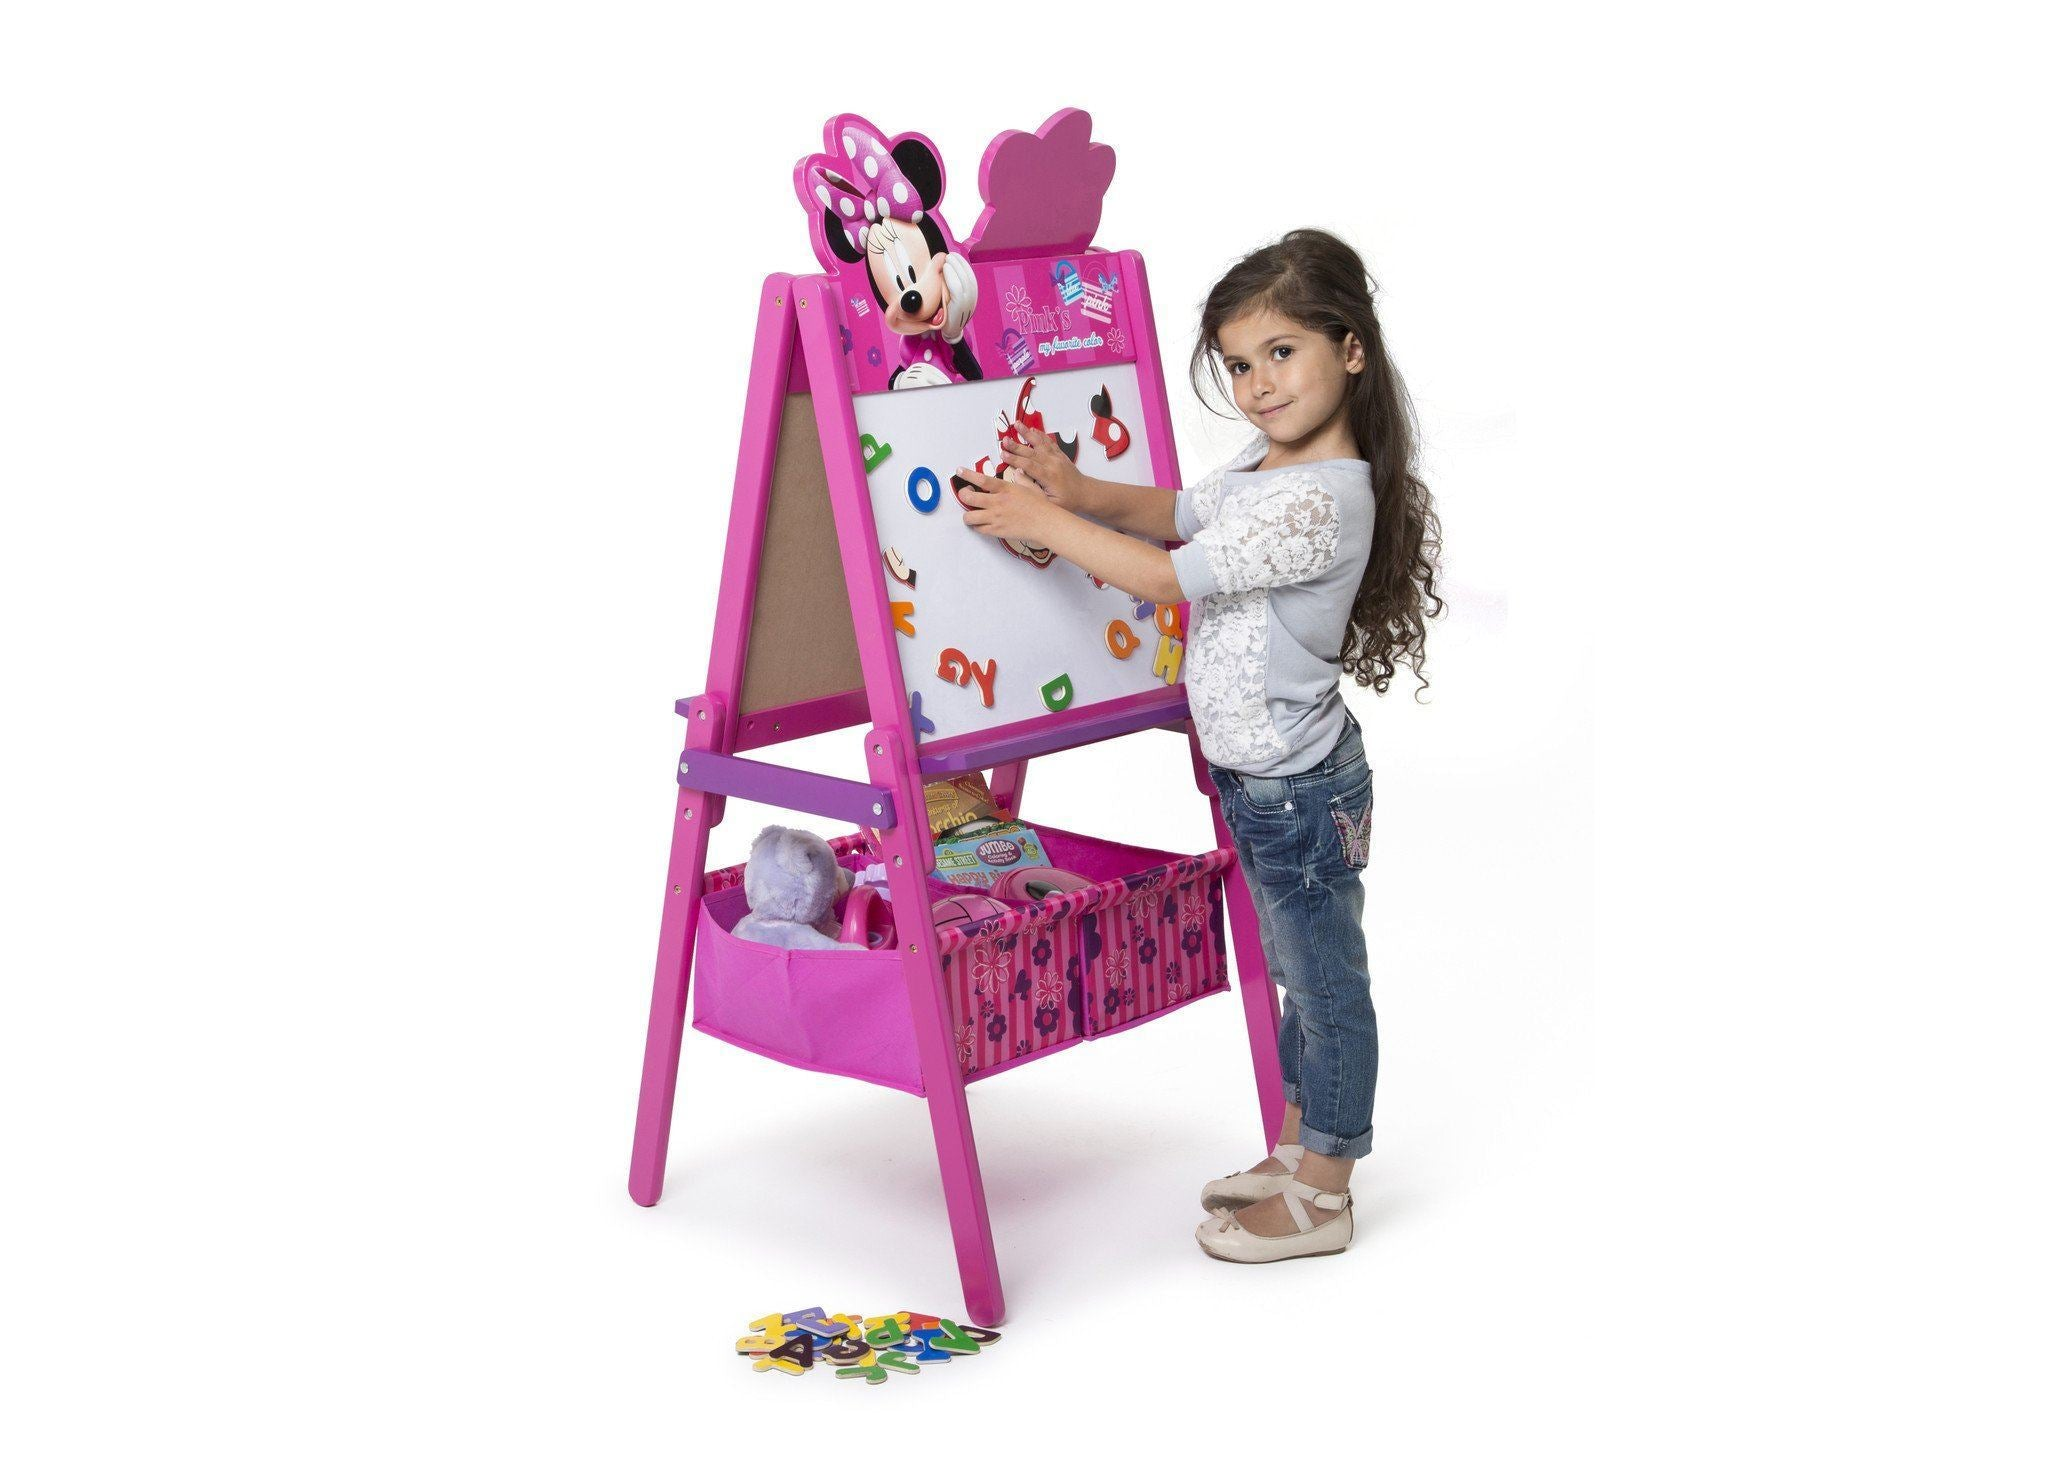 Delta Children Minnie Mouse Activity Easel with Storage, Dry-Erase Surface View with Props Minnie Mouse (1058)